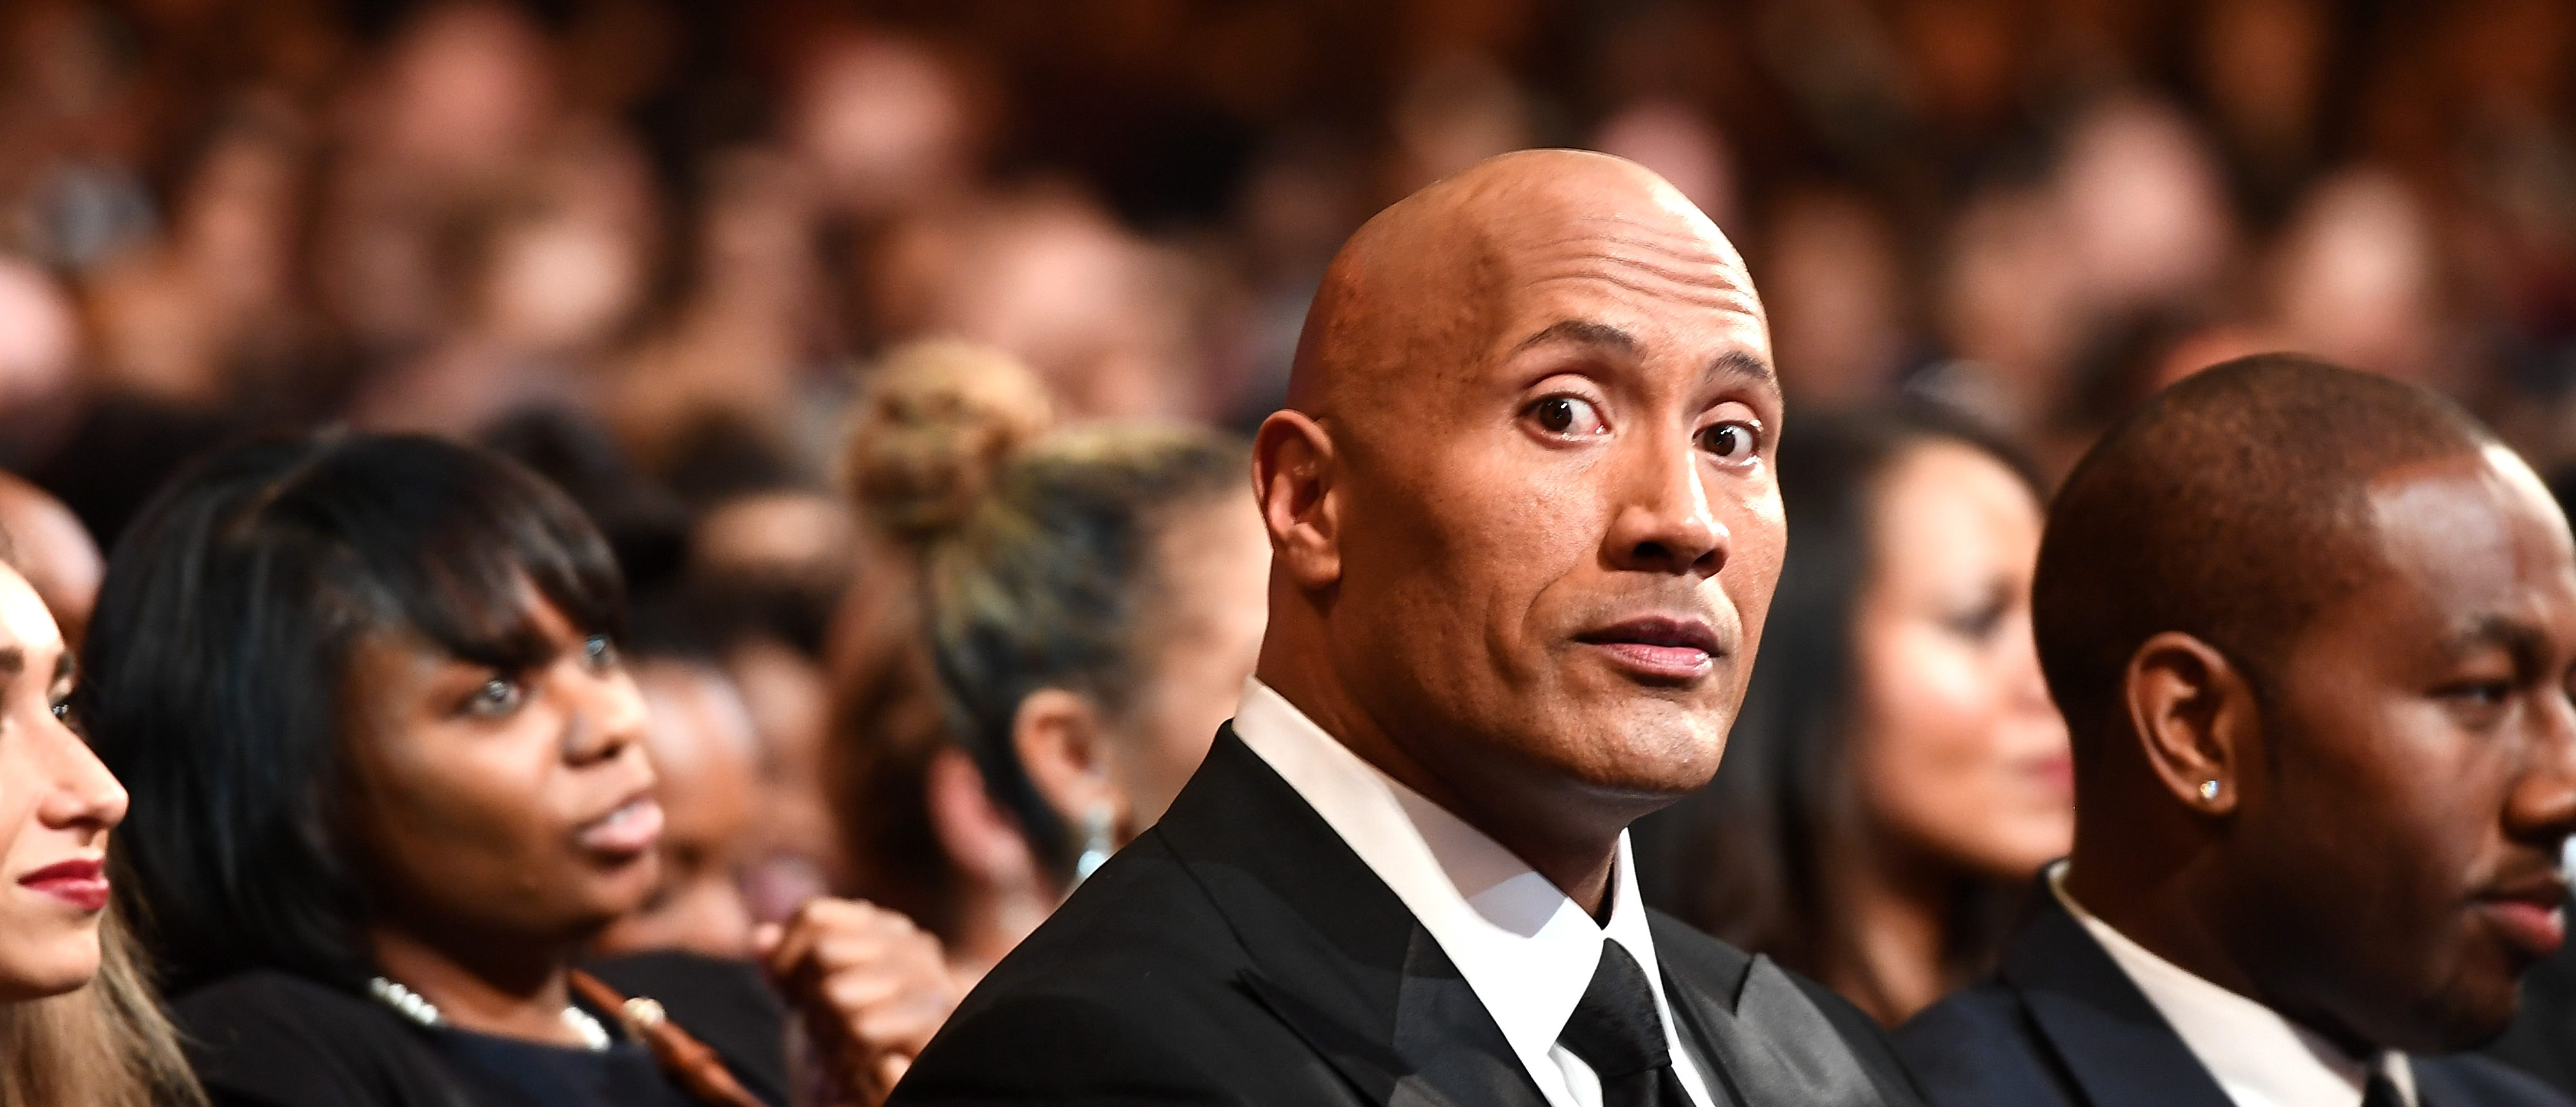 PASADENA, CA - FEBRUARY 11: Actor Dwayne Johnson attends the 48th NAACP Image Awards at Pasadena Civic Auditorium on February 11, 2017 in Pasadena, California. (Photo by Marcus Ingram/Getty Images for NAACP Image Awards)